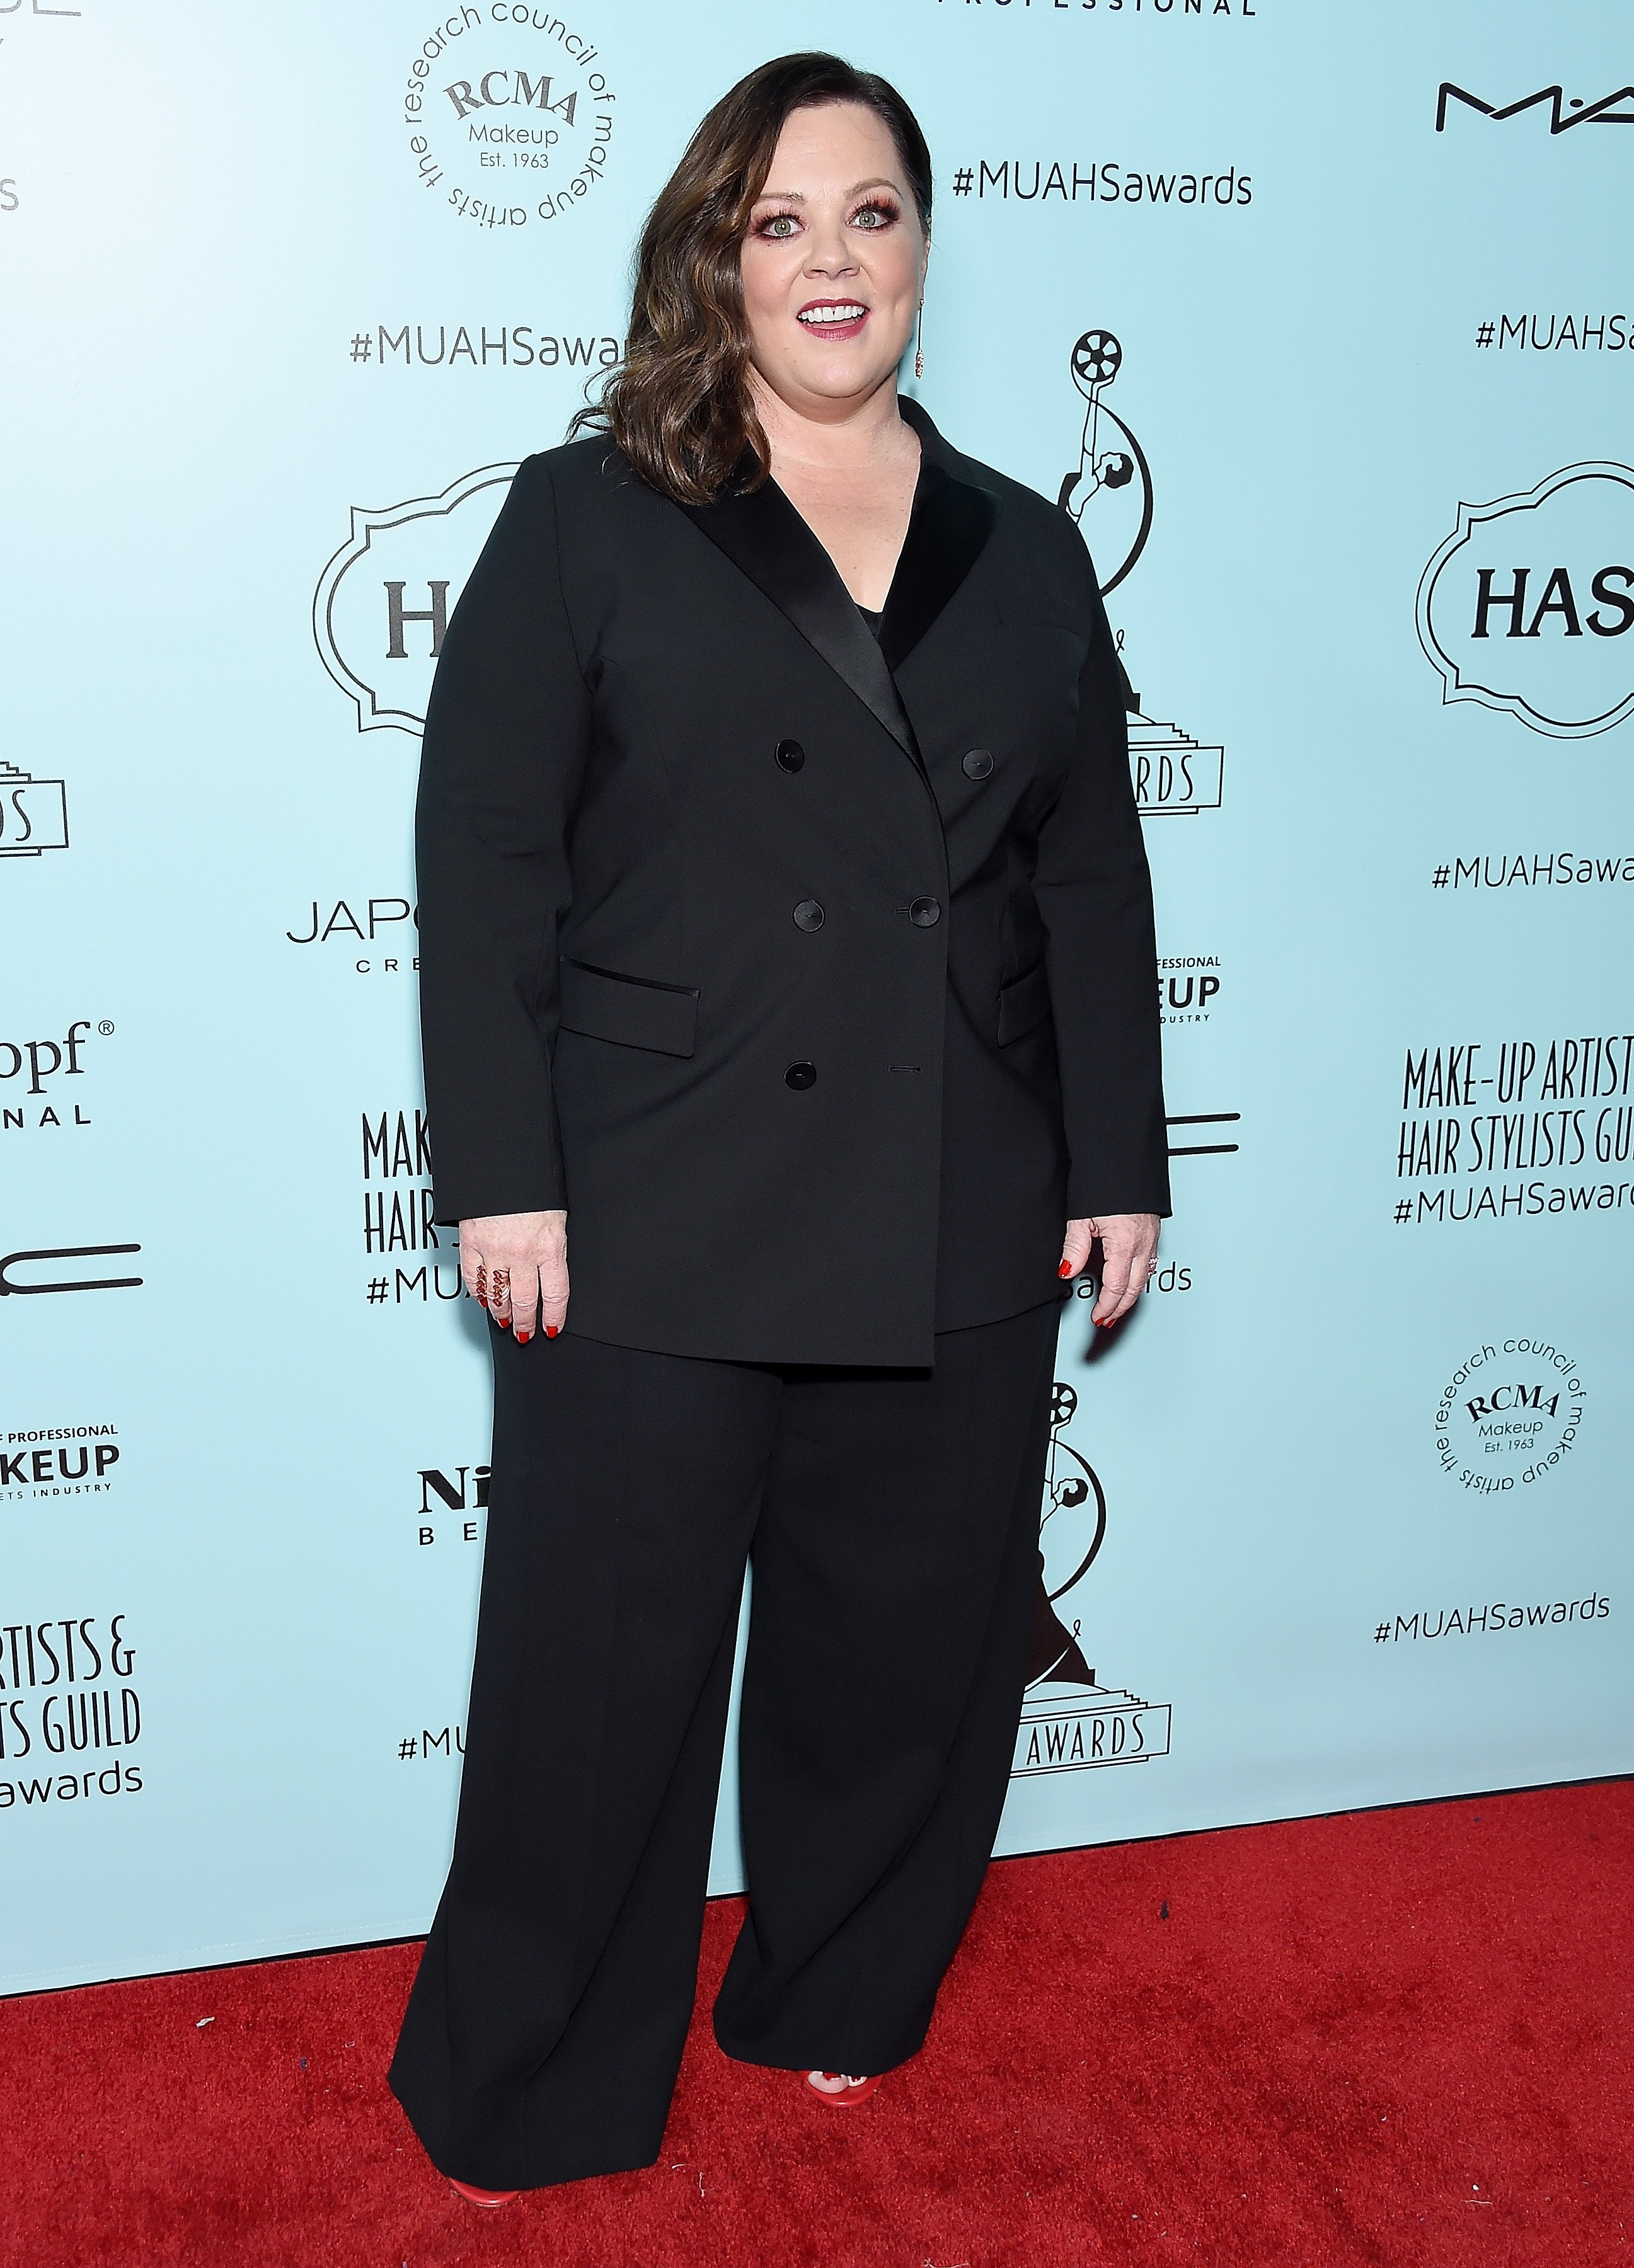 Melissa McCarthy at the Make-Up Artists and Hair Stylists Guild Awards in February 2019 | Photo: Getty Images